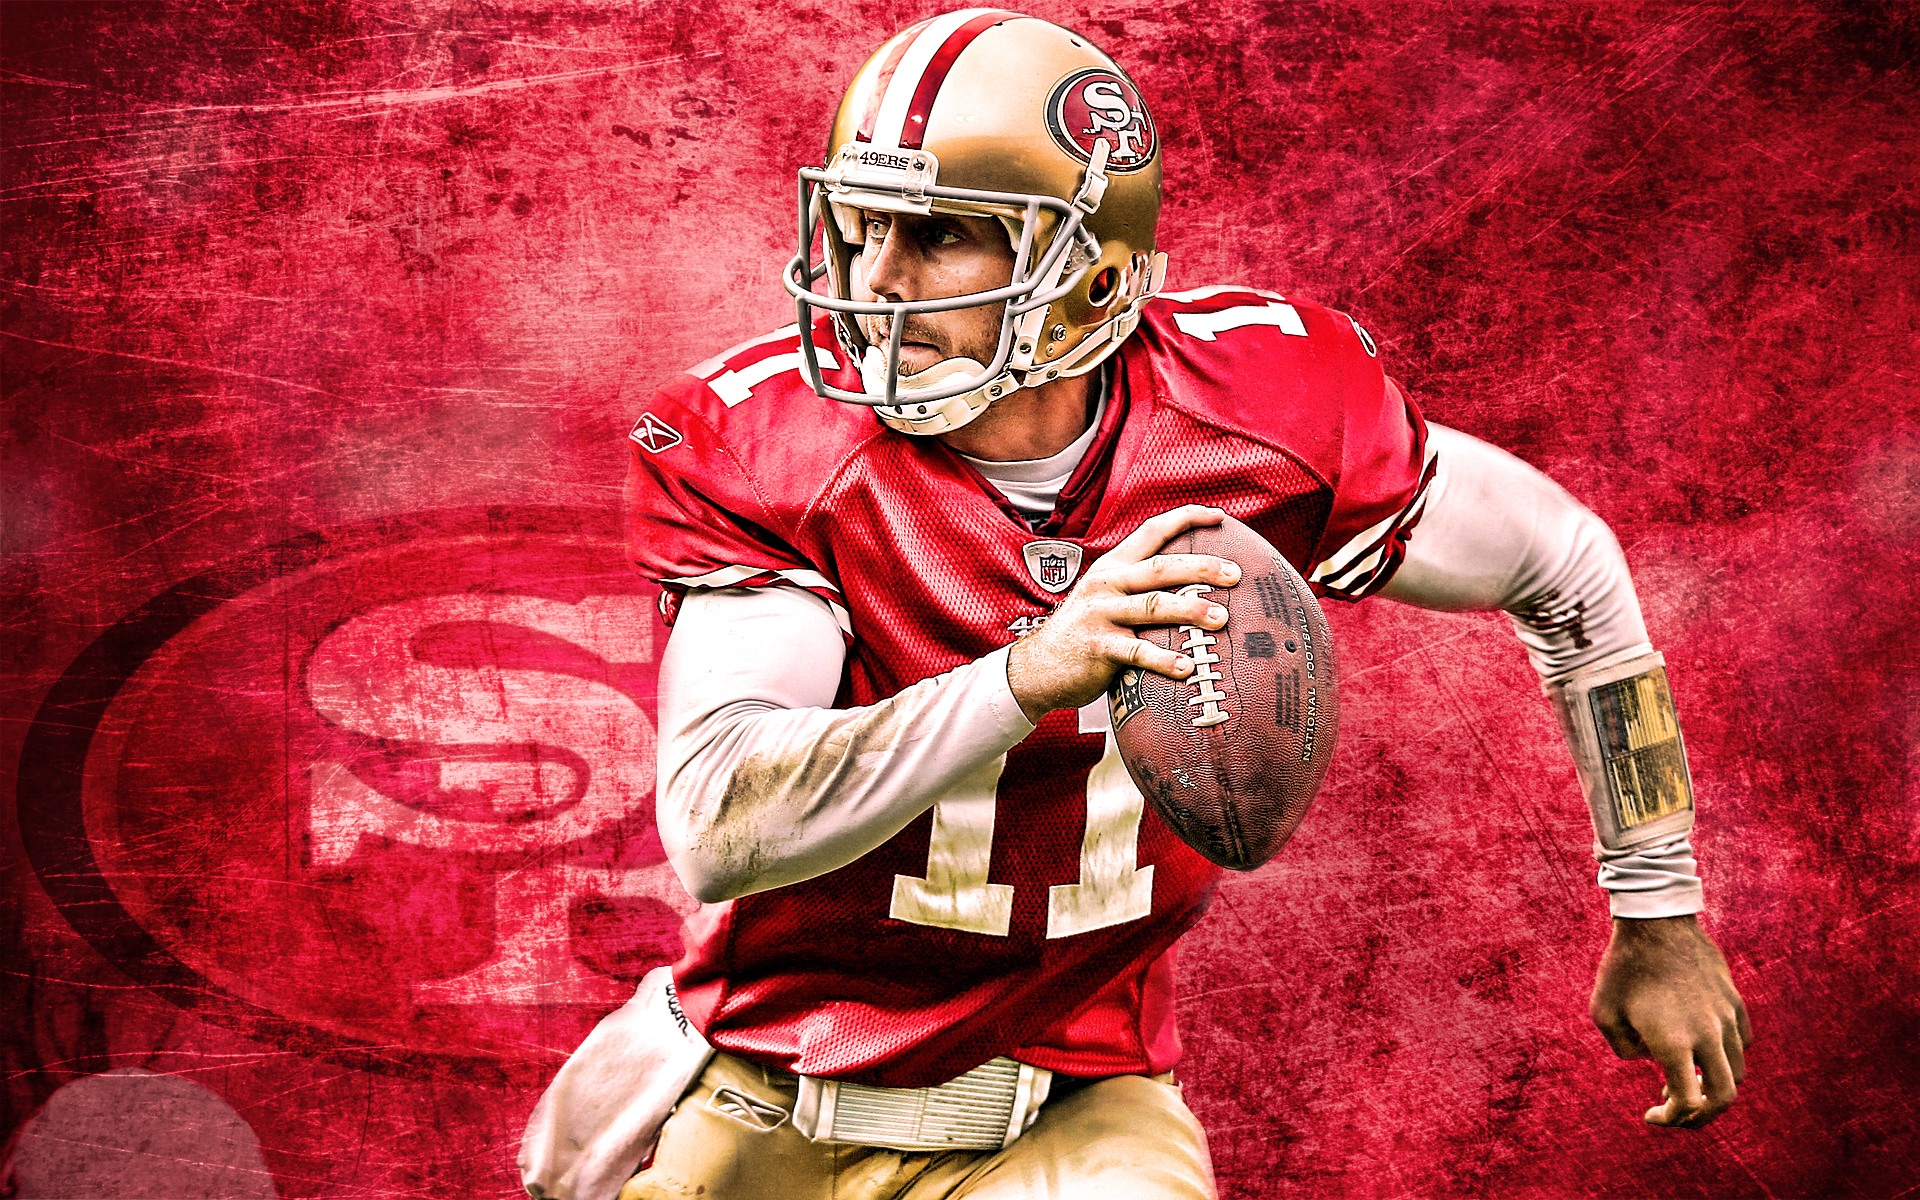 49er radio 49ers wallpapers 49ers images 49ers hd wallpapers 49ers 1920x1200